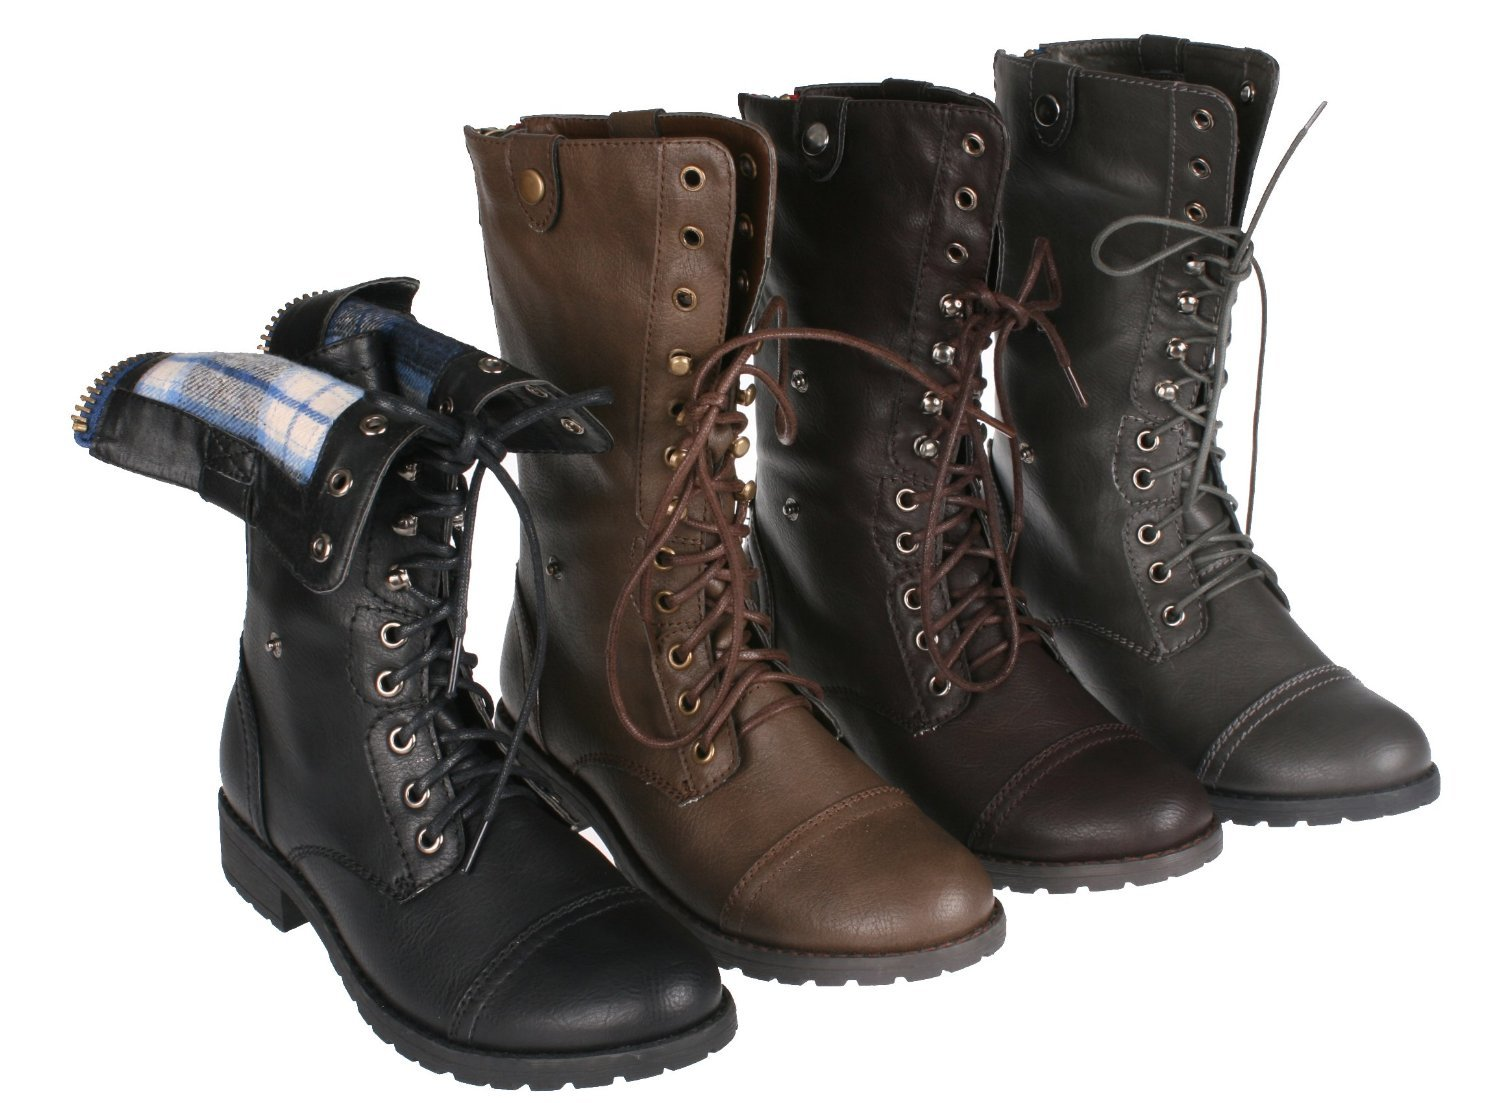 Cute Combat Boots For Women LagzmSa2